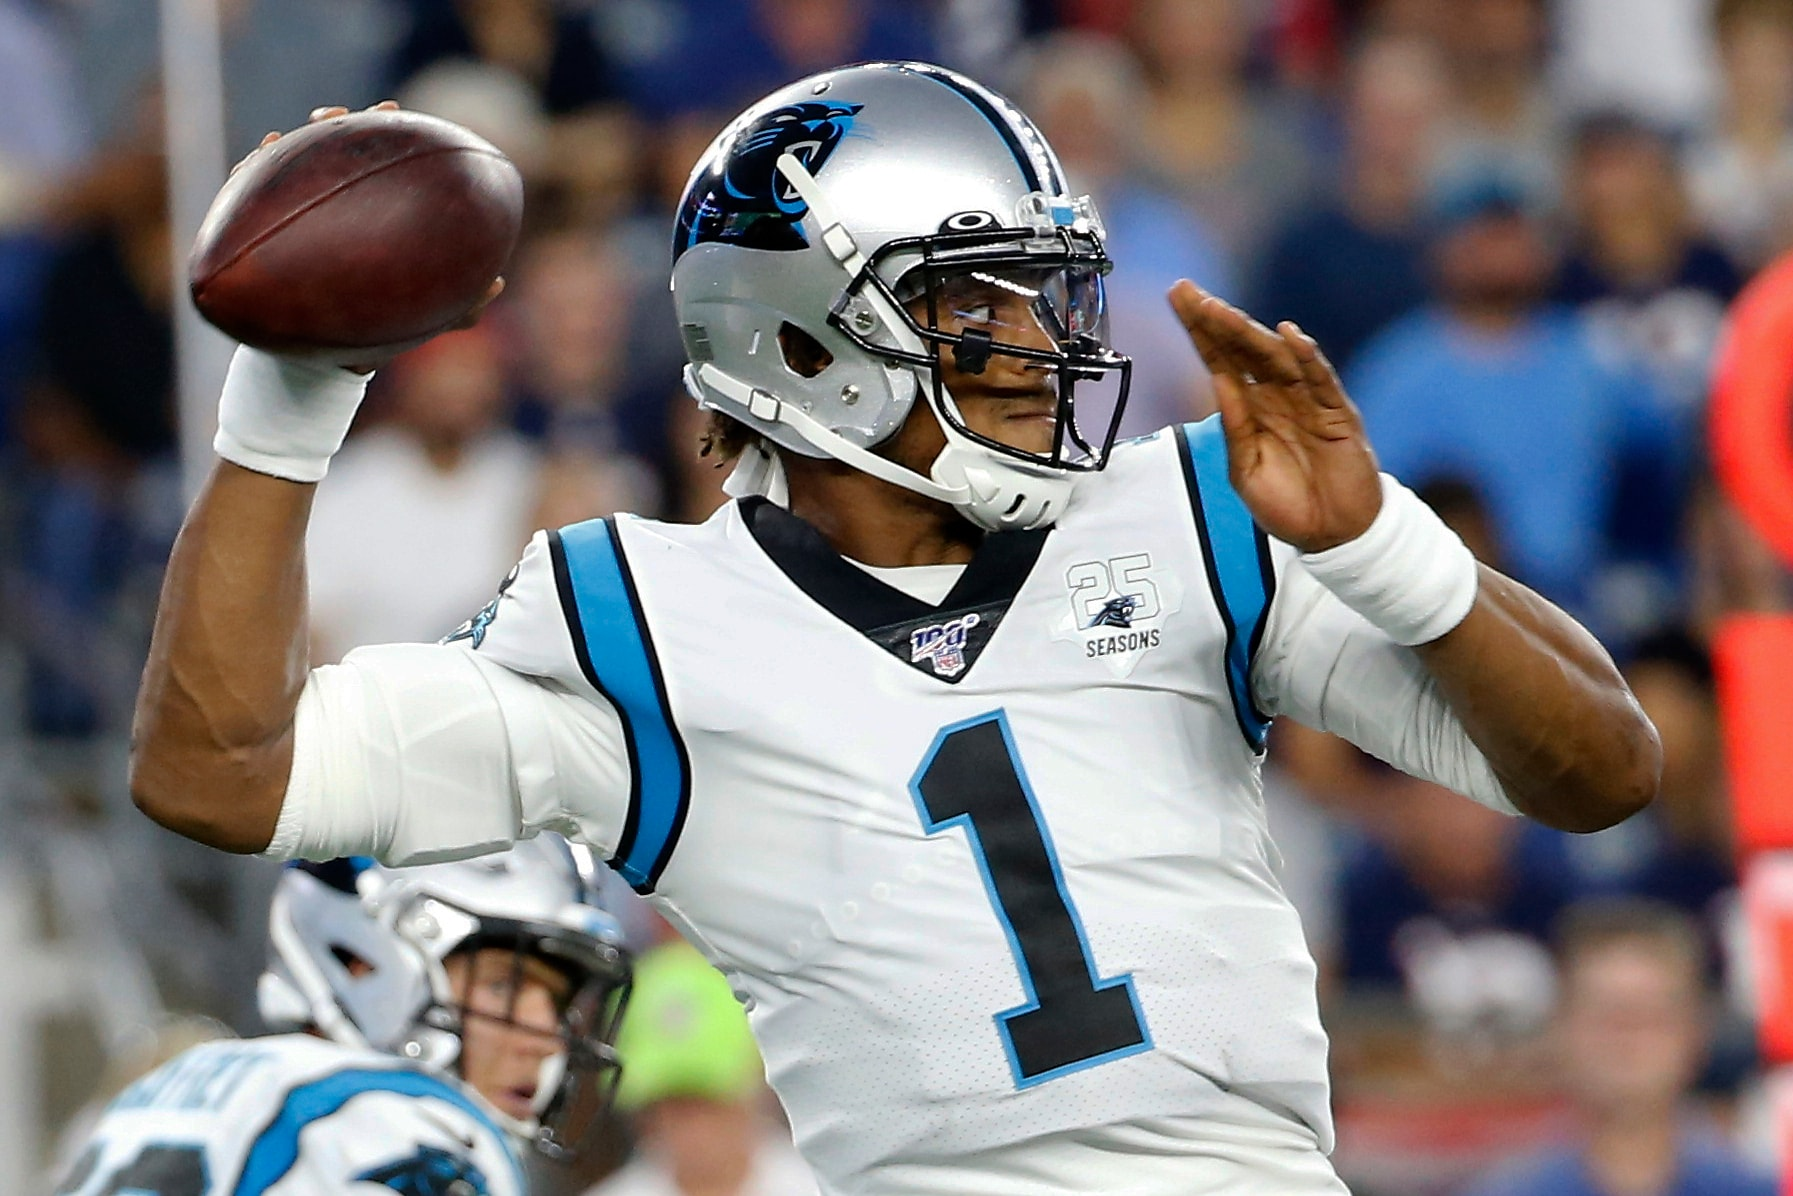 Quarterback Cam Newton returning to NFL